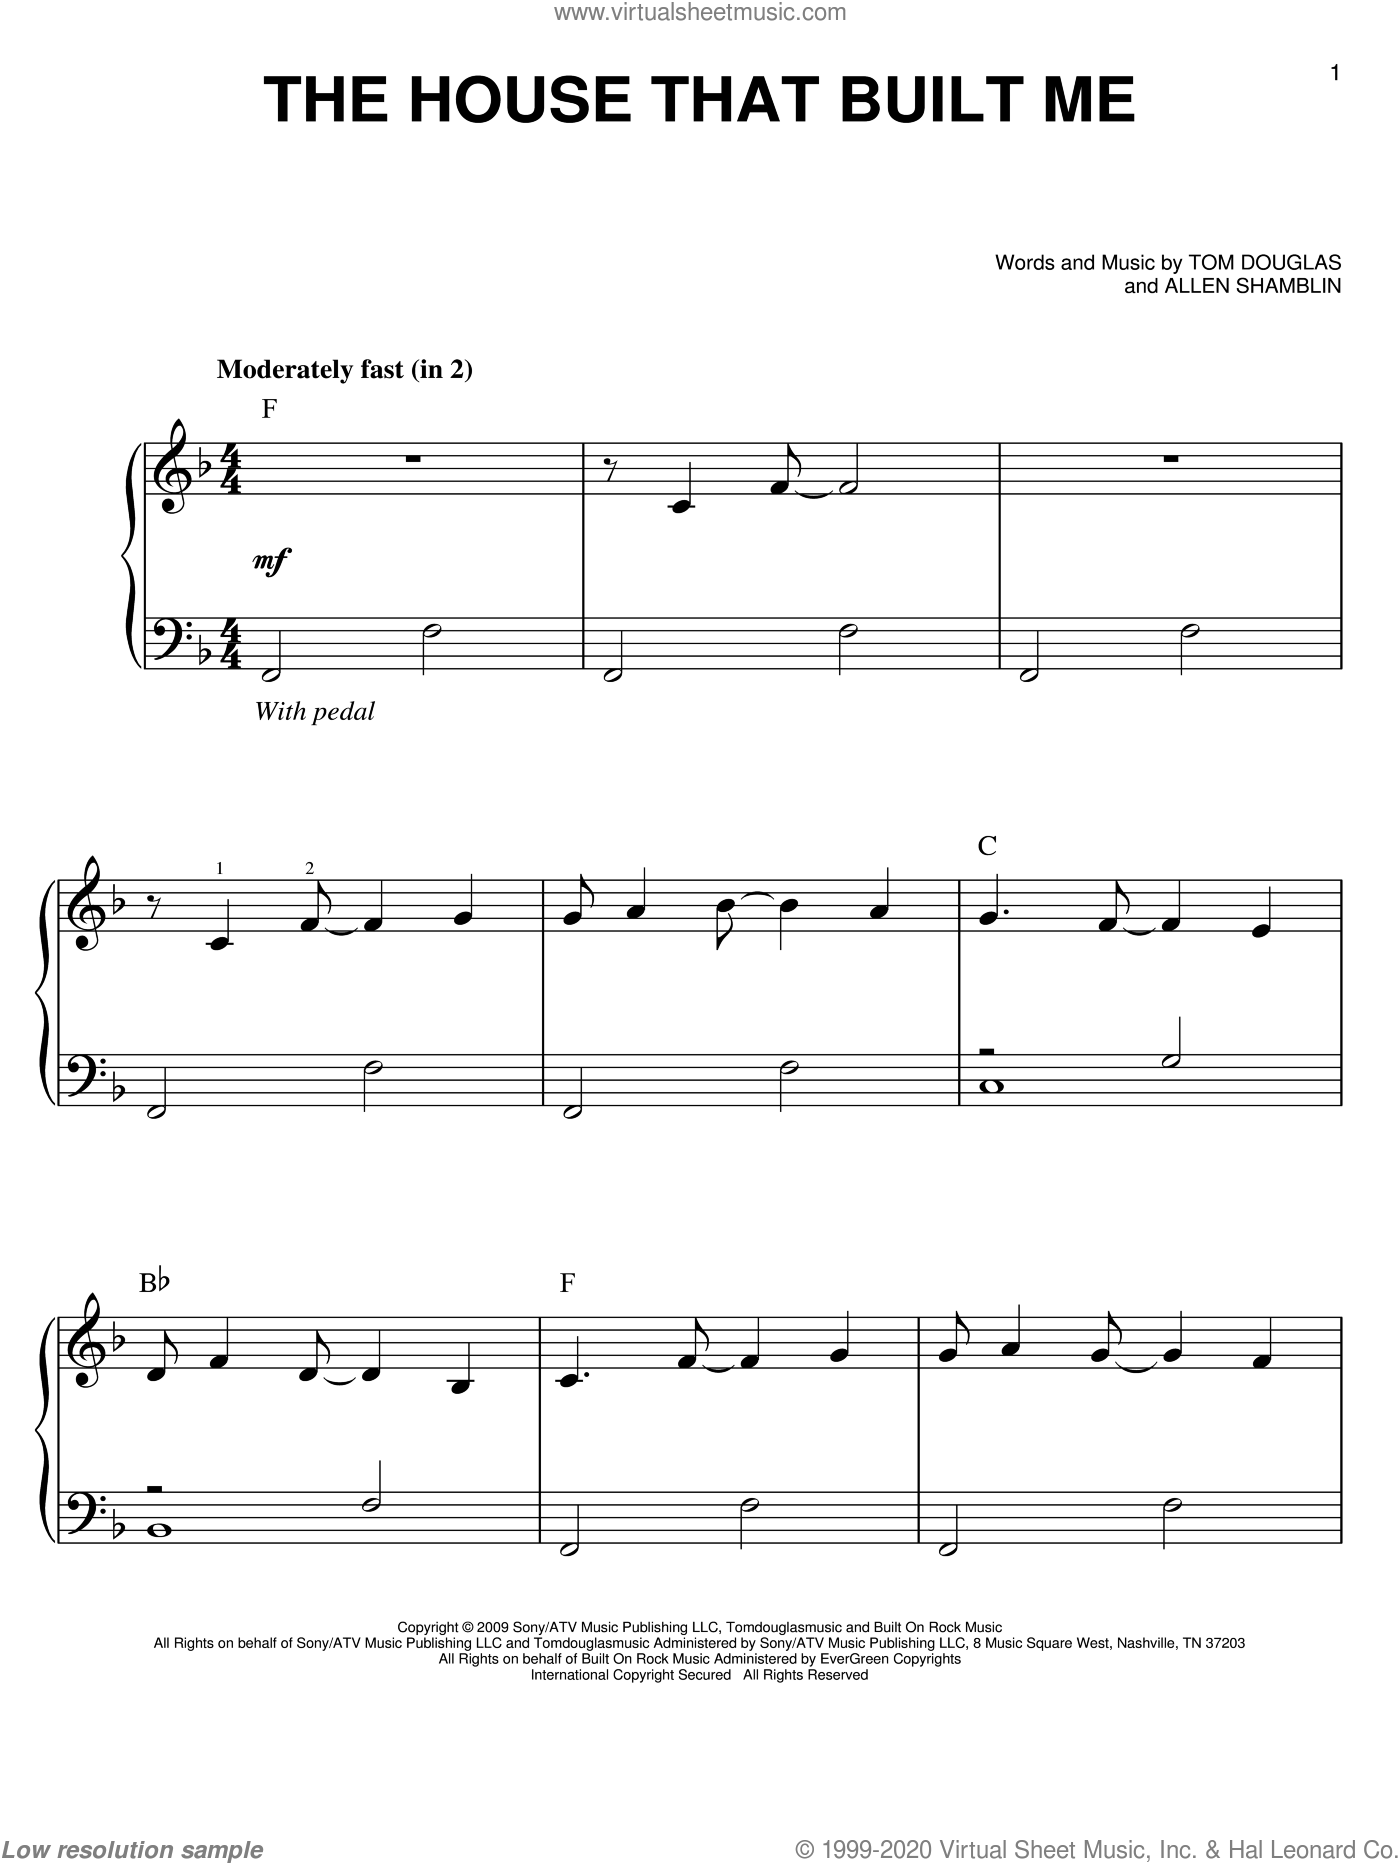 The House That Built Me sheet music for piano solo by Tom Douglas, Miranda Lambert and Allen Shamblin